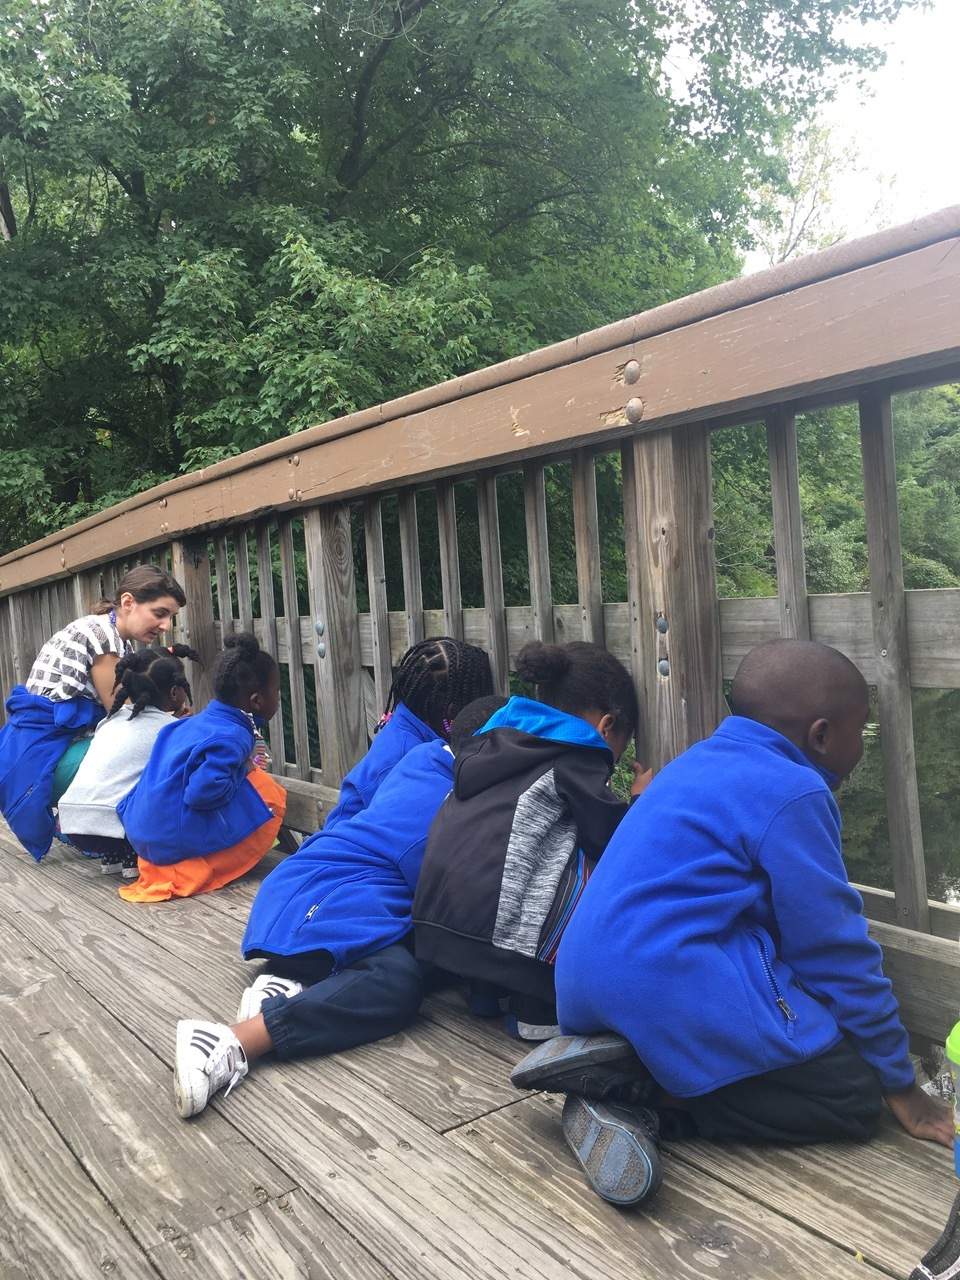 The pathway led to a small bridge that spanned across a pond. Students took in the natural beauty and searched for the pond's inhabitants. Many students enthusiastically searched for small rings in the water that were created by the fish living in the pond.